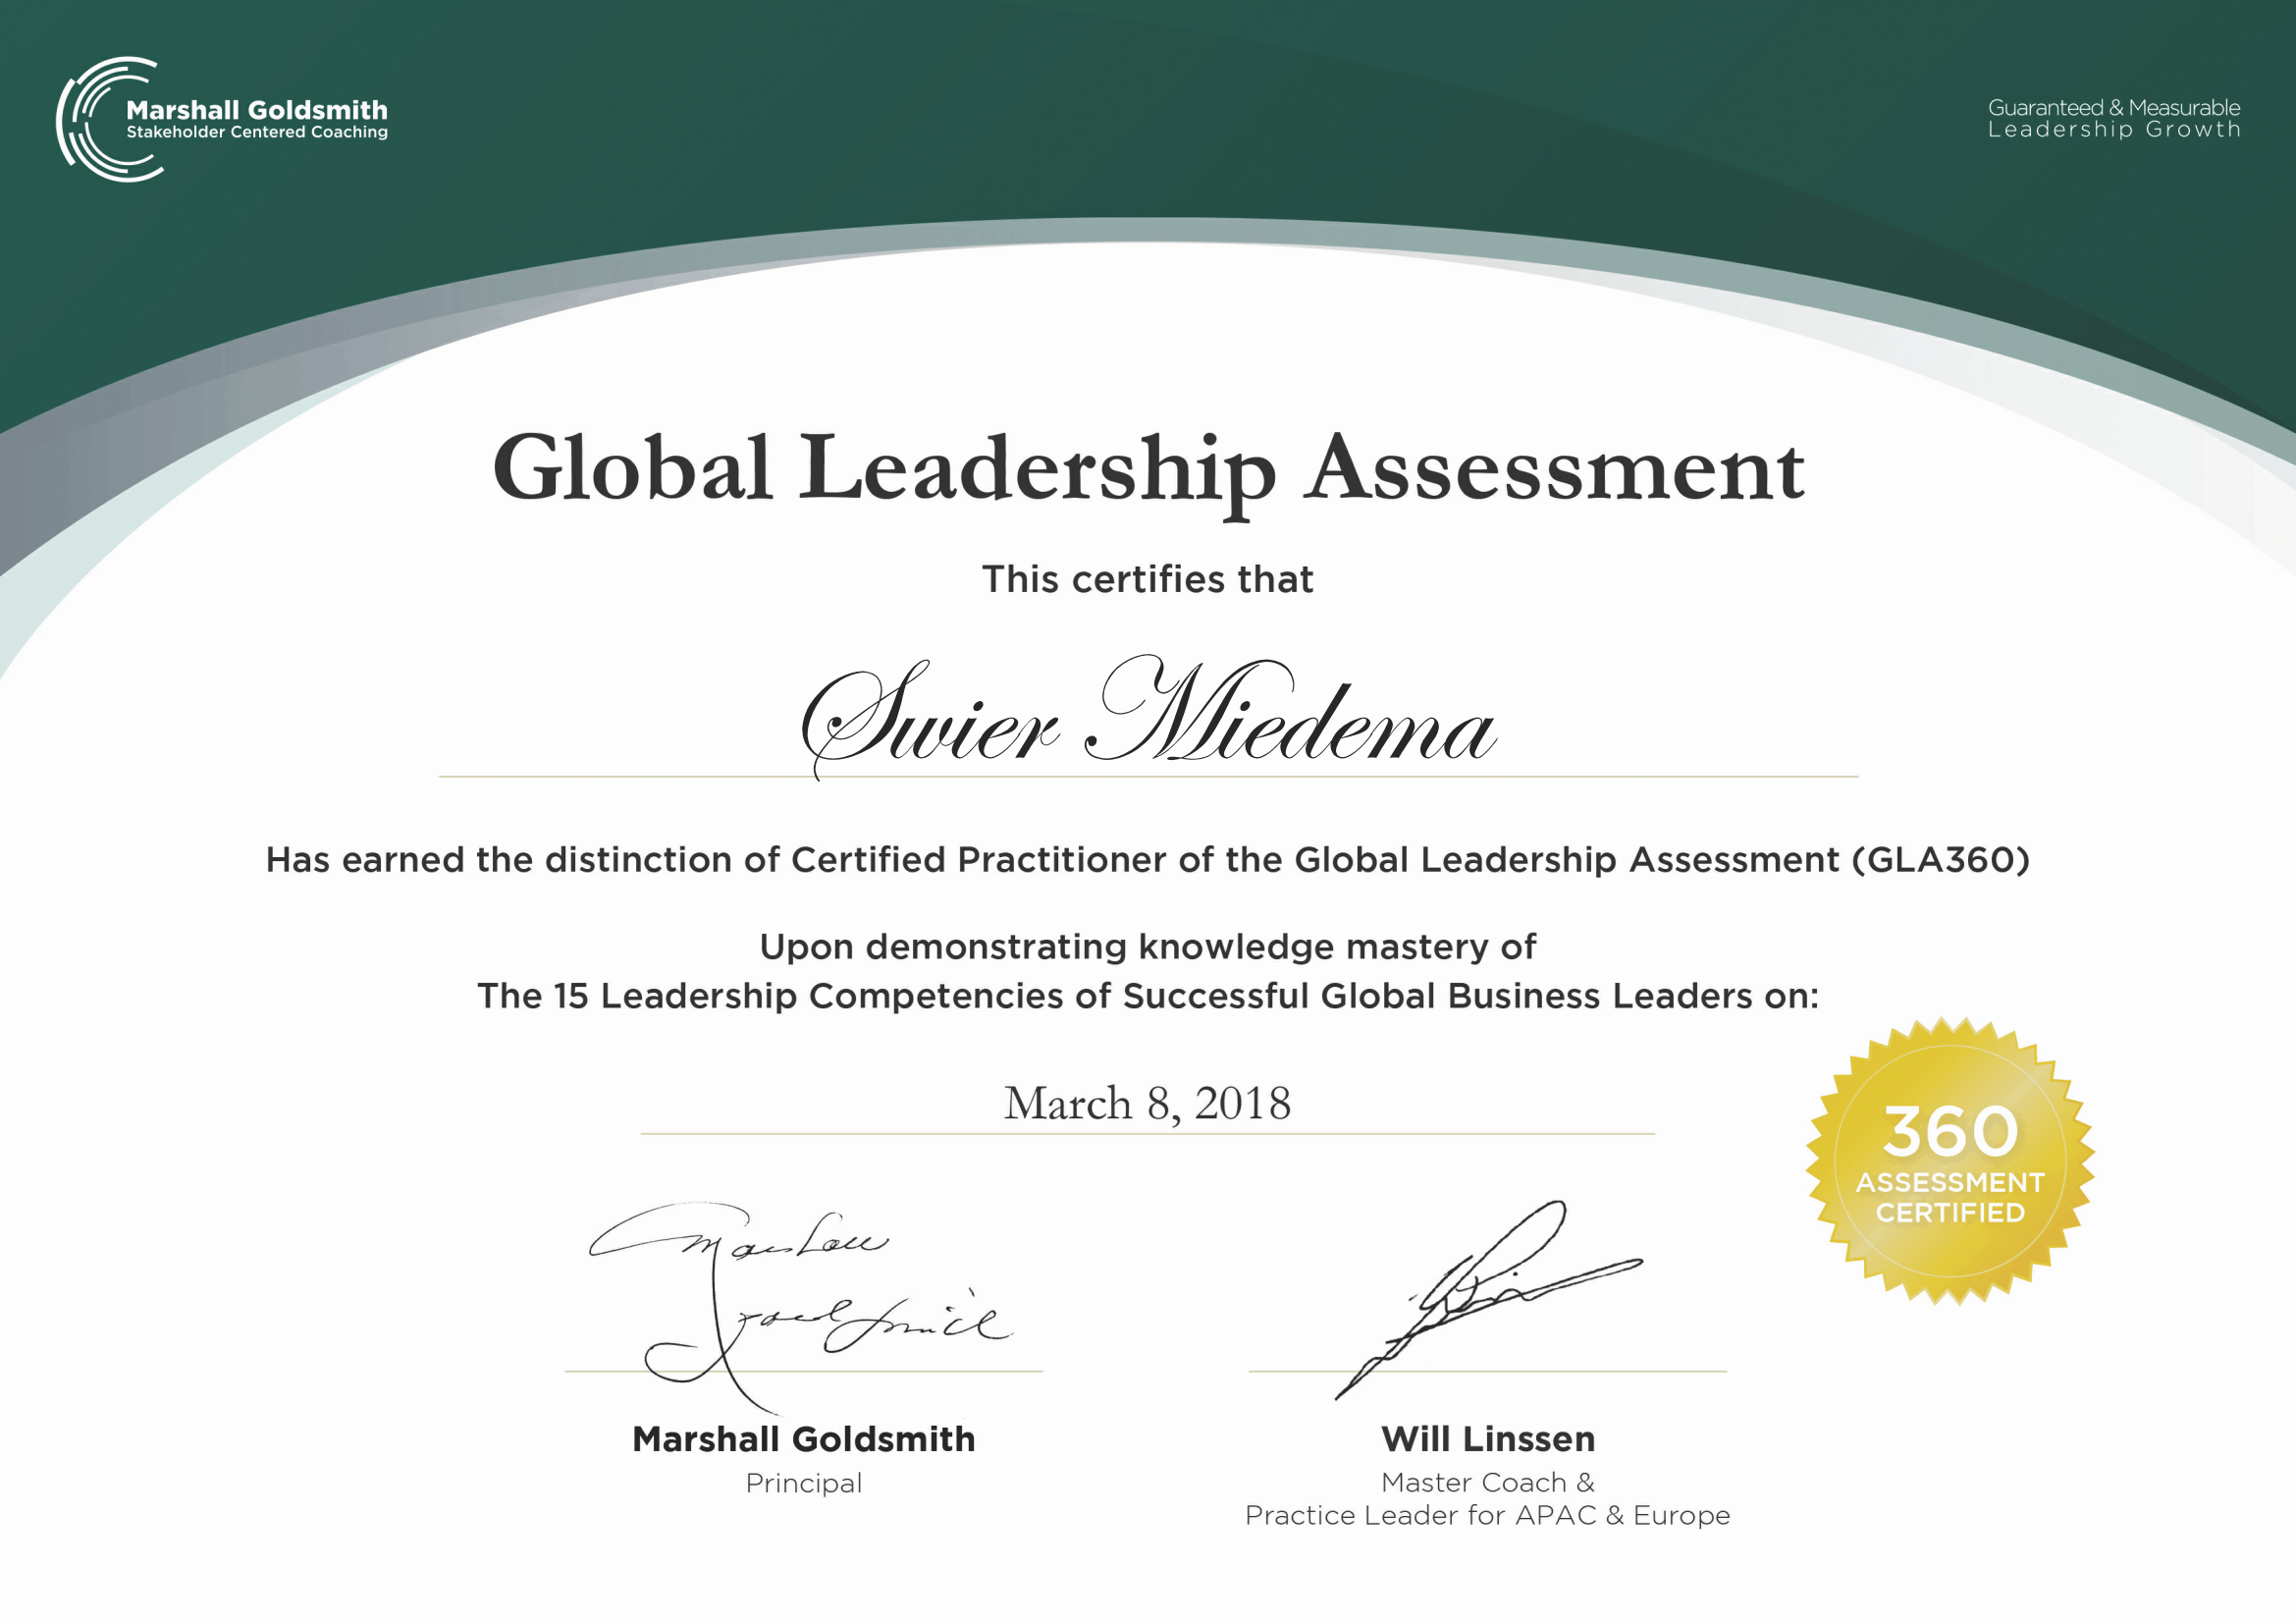 Global Leadership Assessment